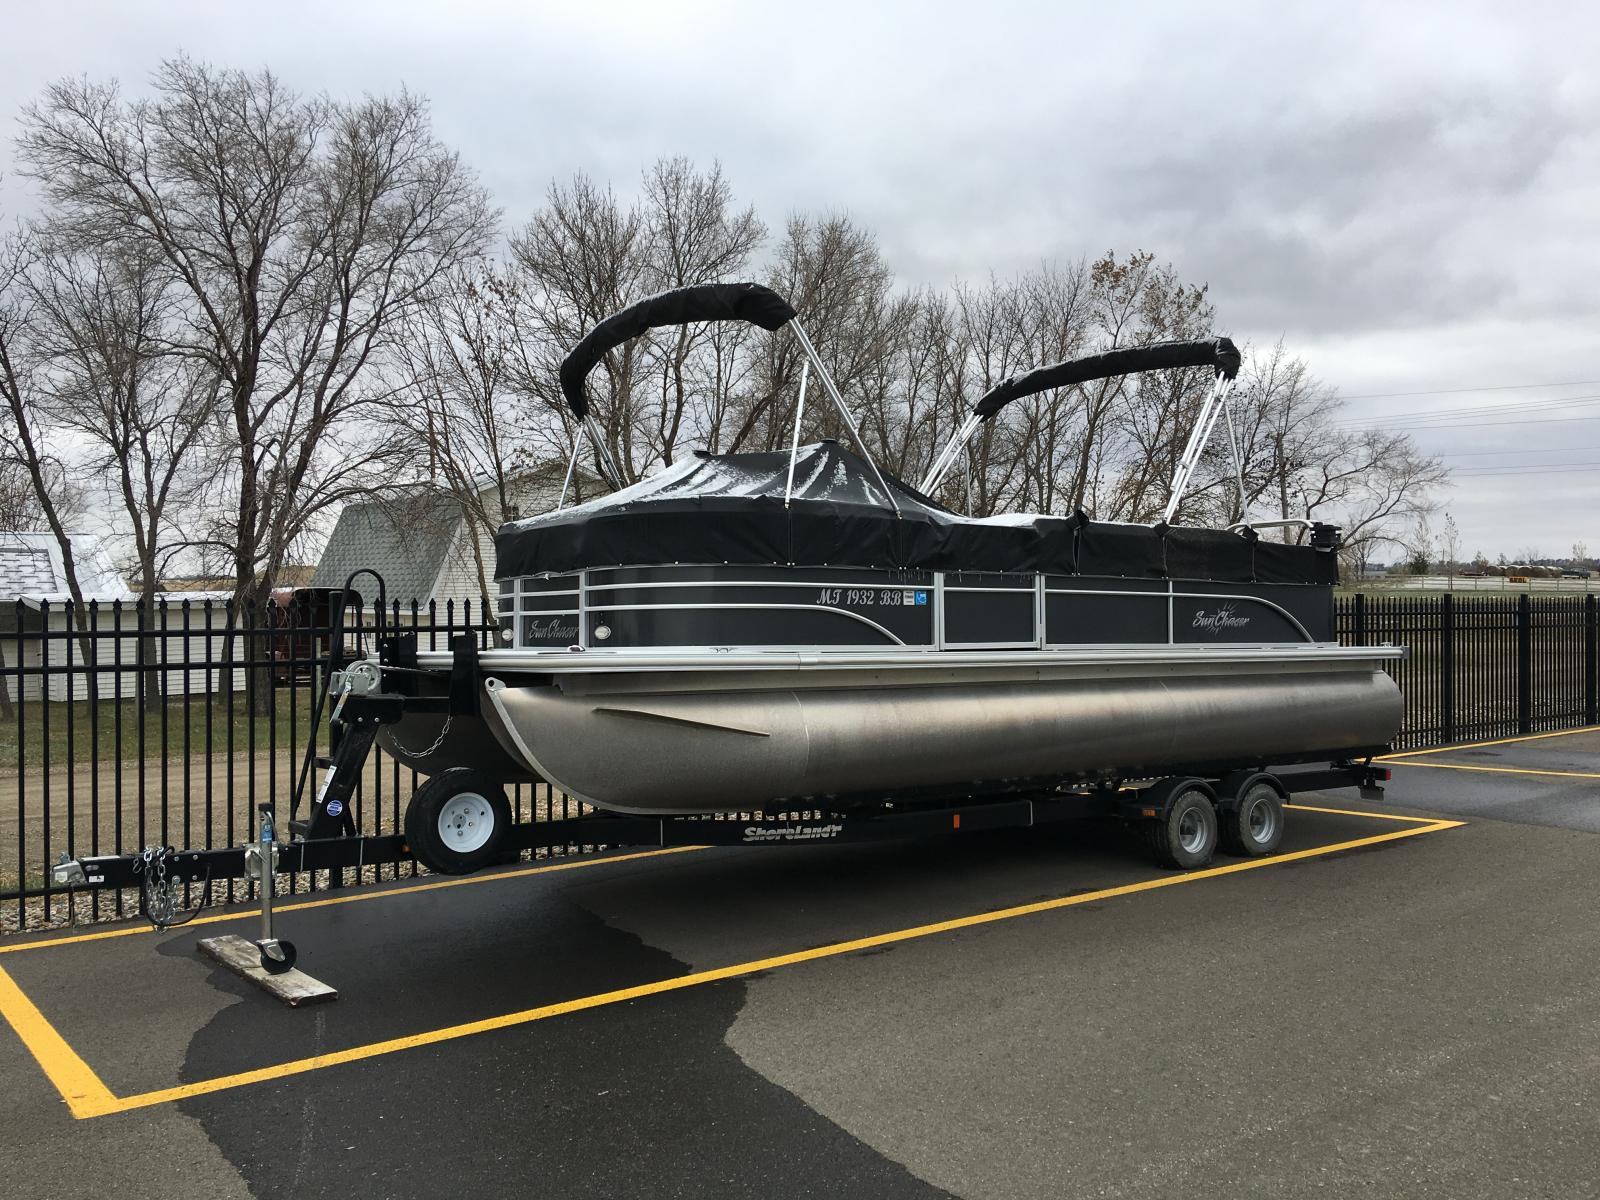 Boat & Trailer Parking